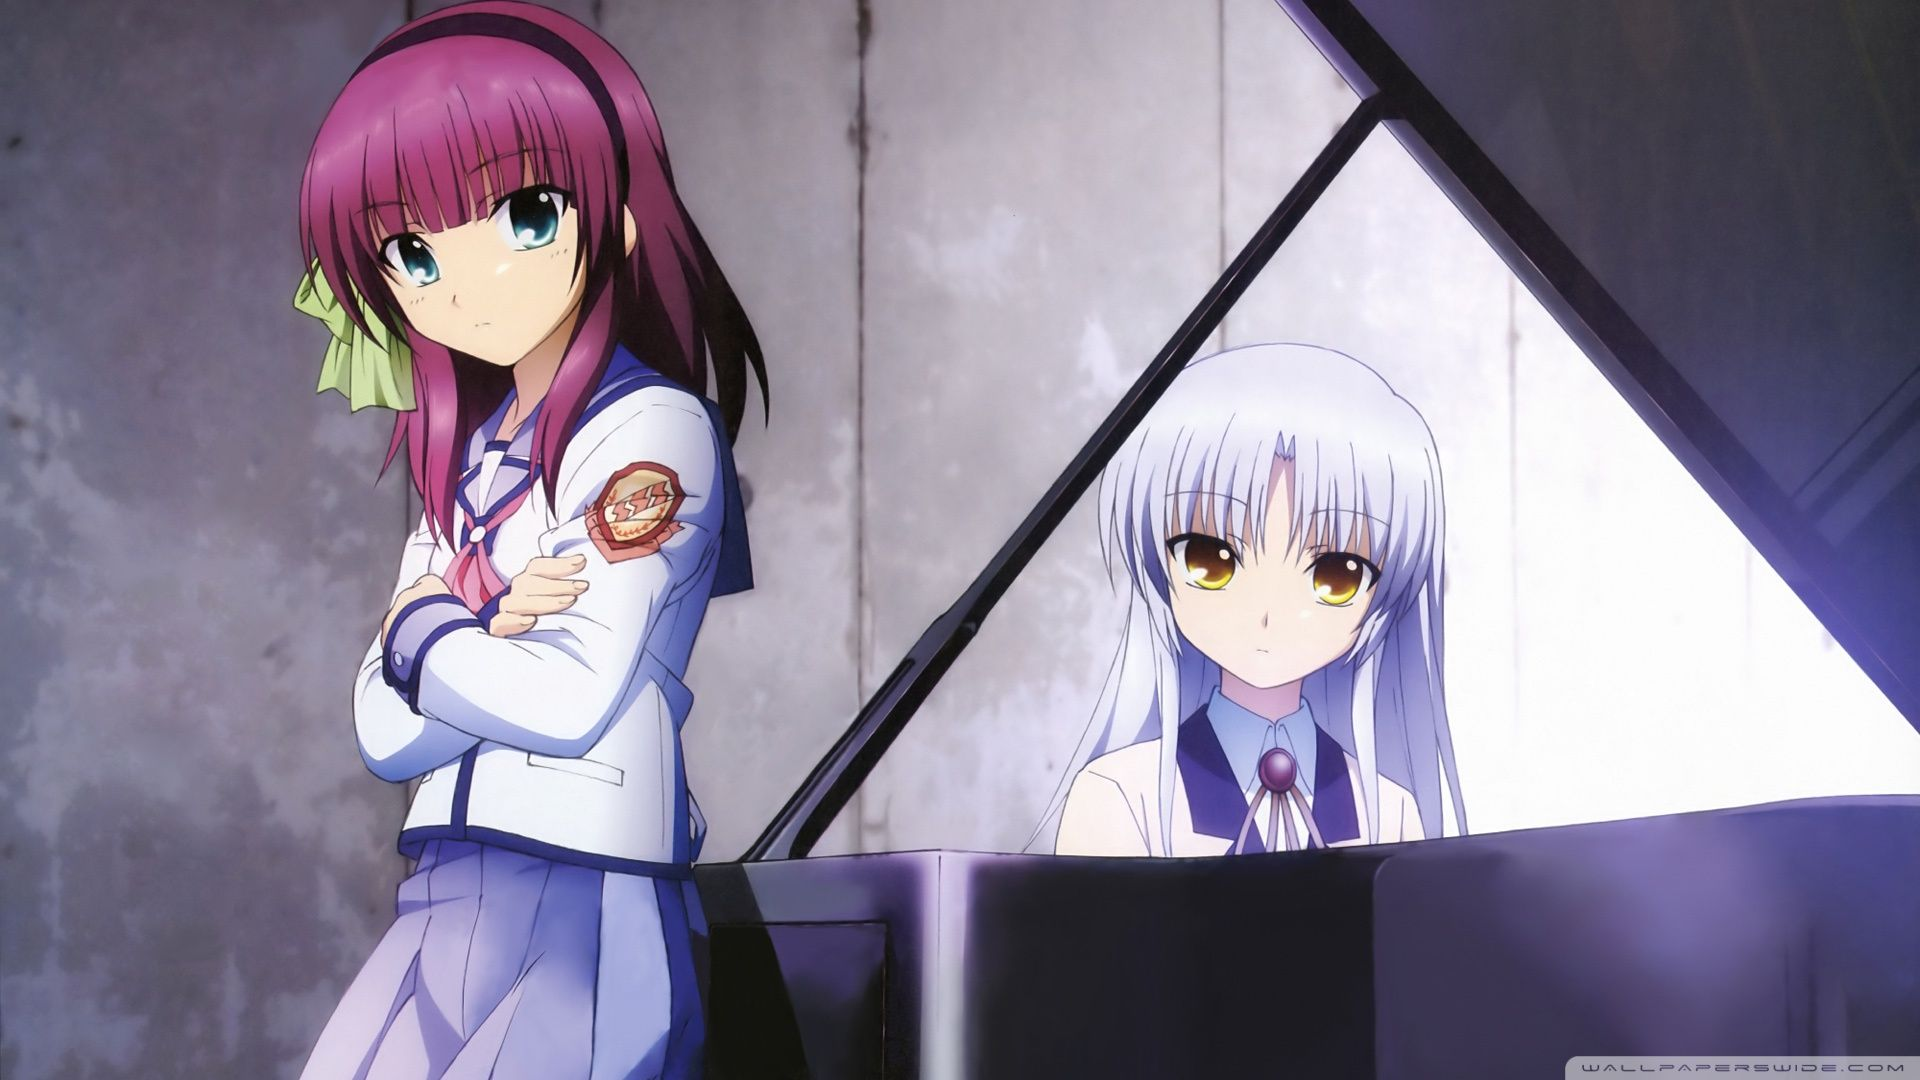 angel beats yuri google search visual fx sequence character angel beats yuri google search visual fx sequence character amizade angel beats e google